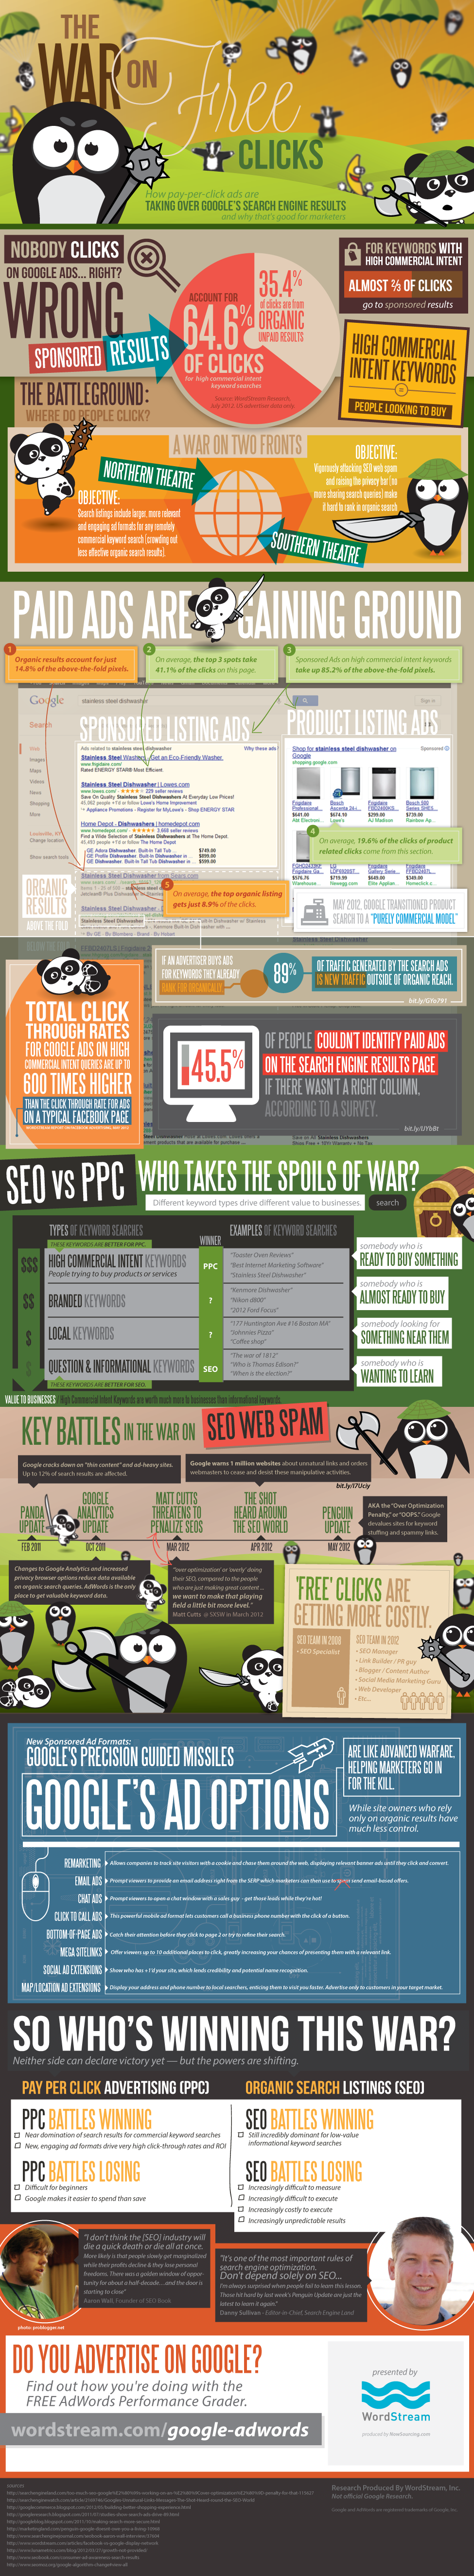 War on Free Clicks: How Paid Clicks Are Taking Over Google Search Results